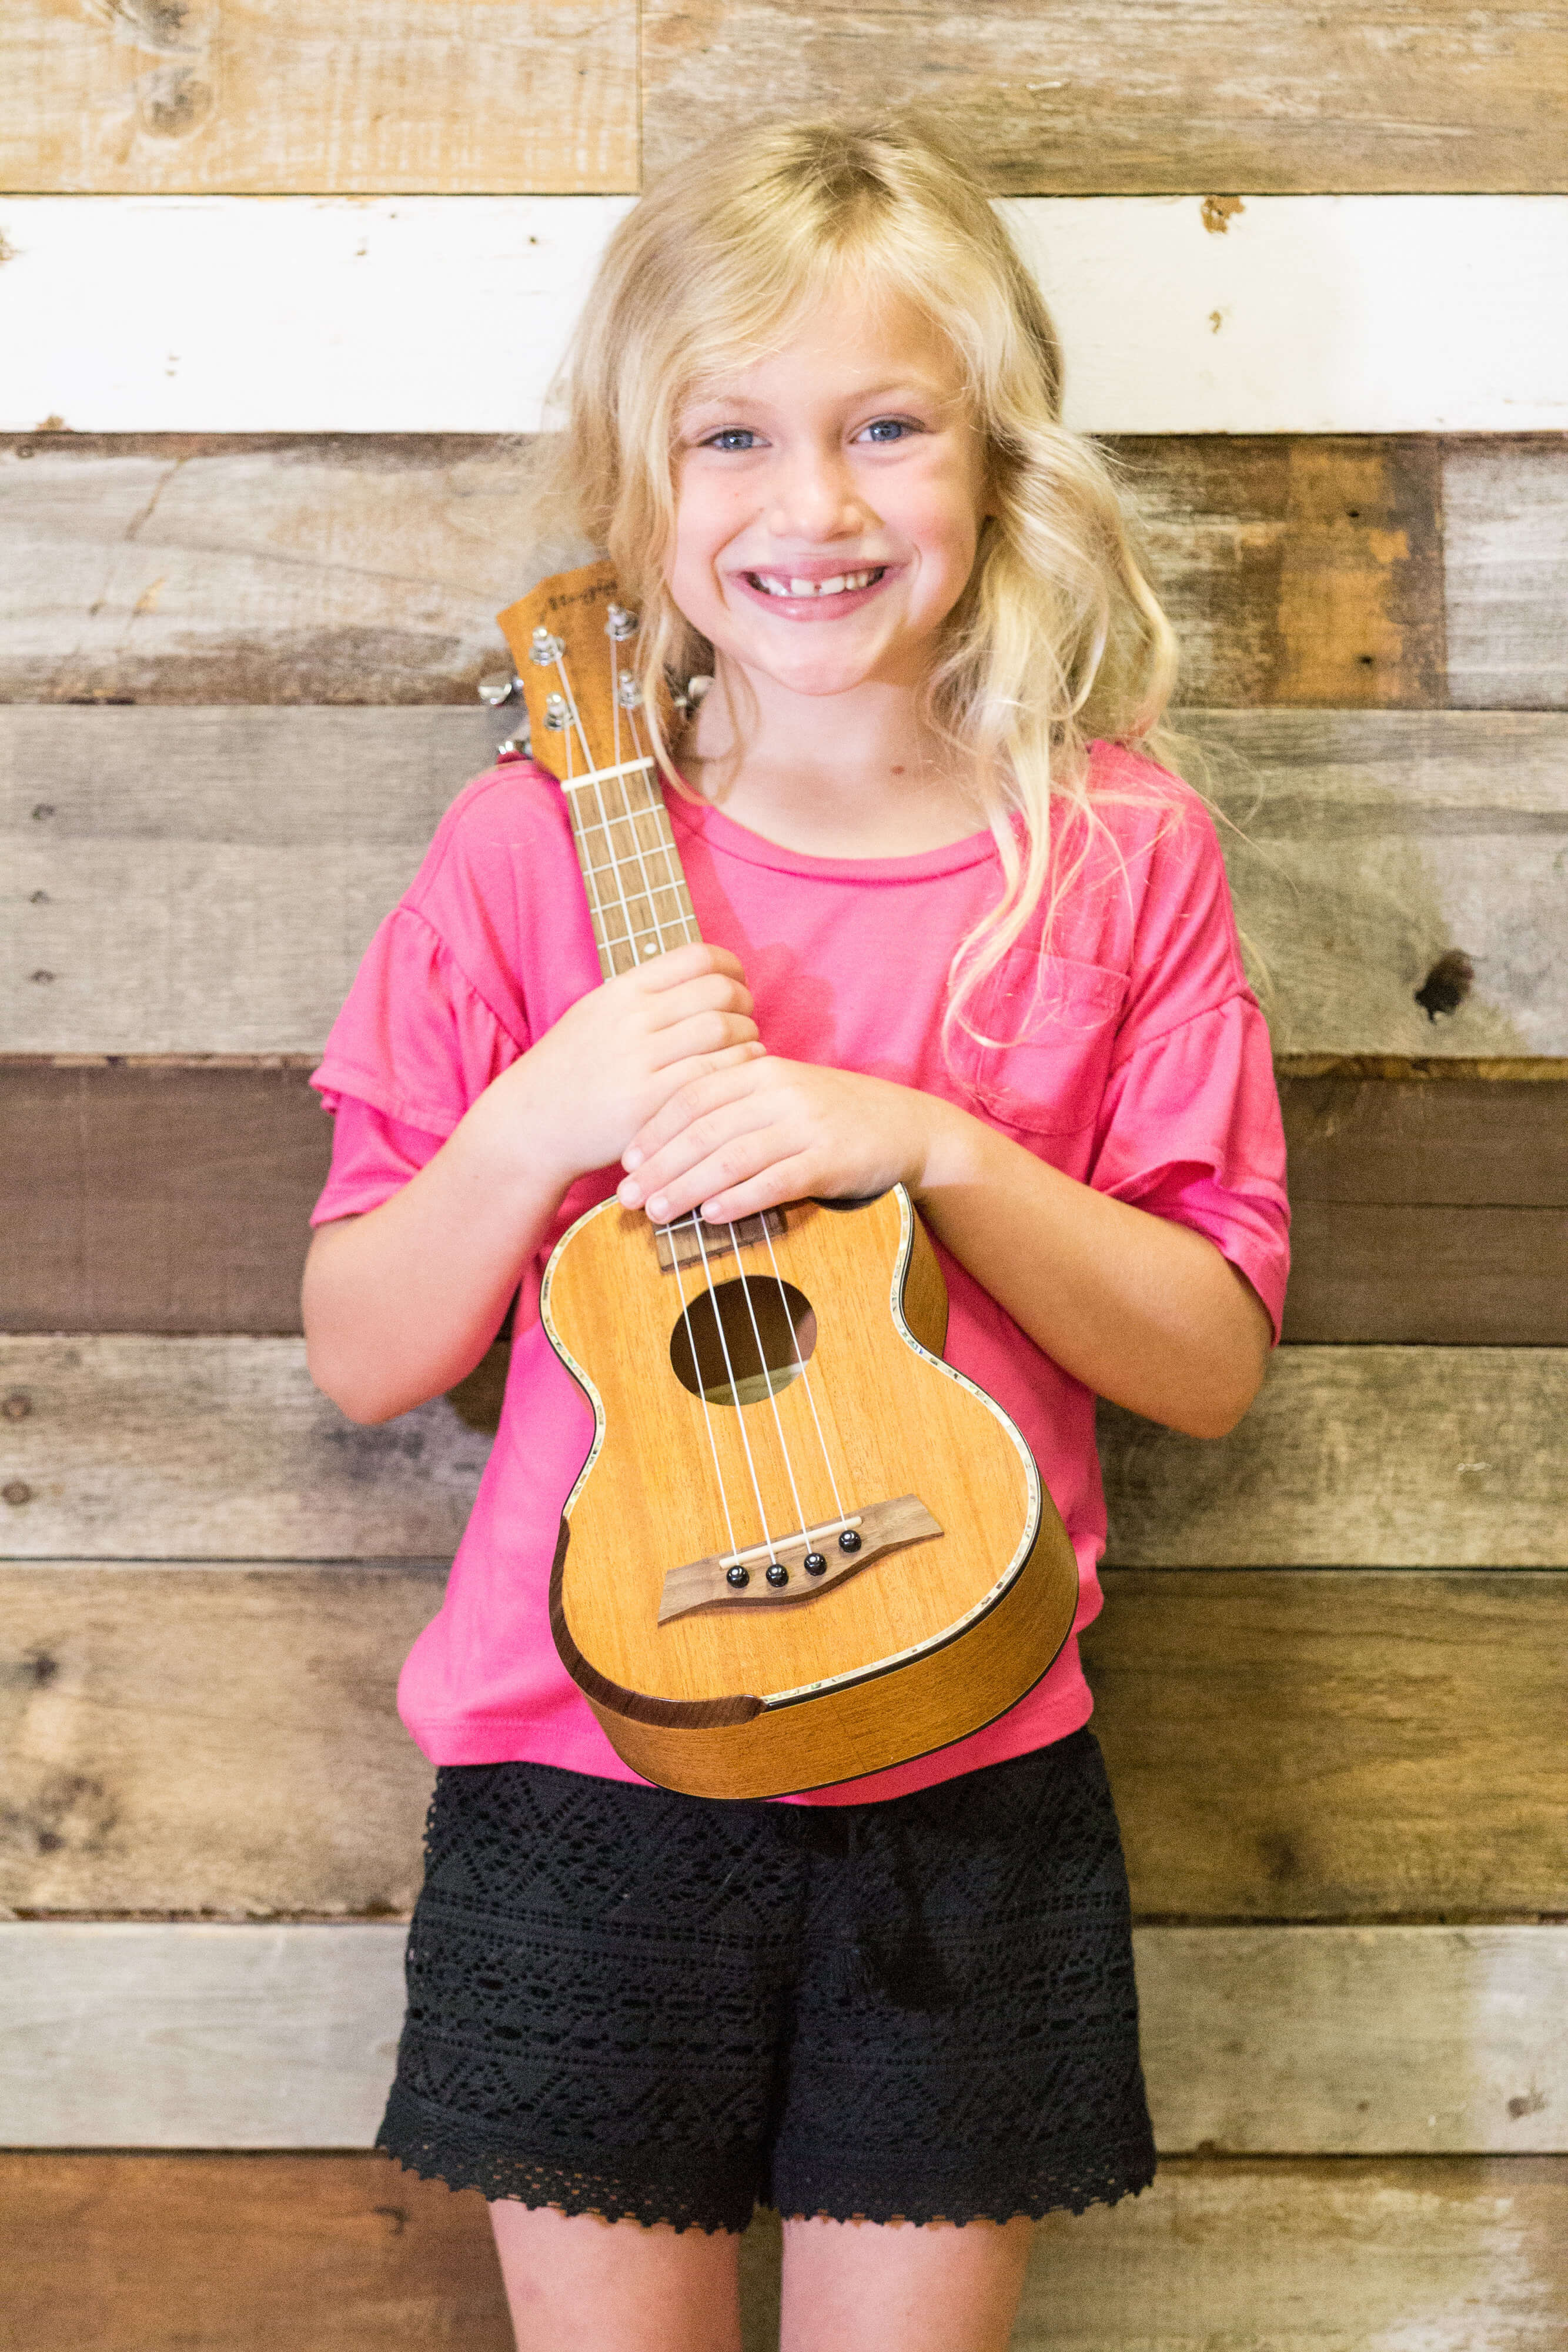 Ukulele lessons are so much fun at Weatherford Music Academy!